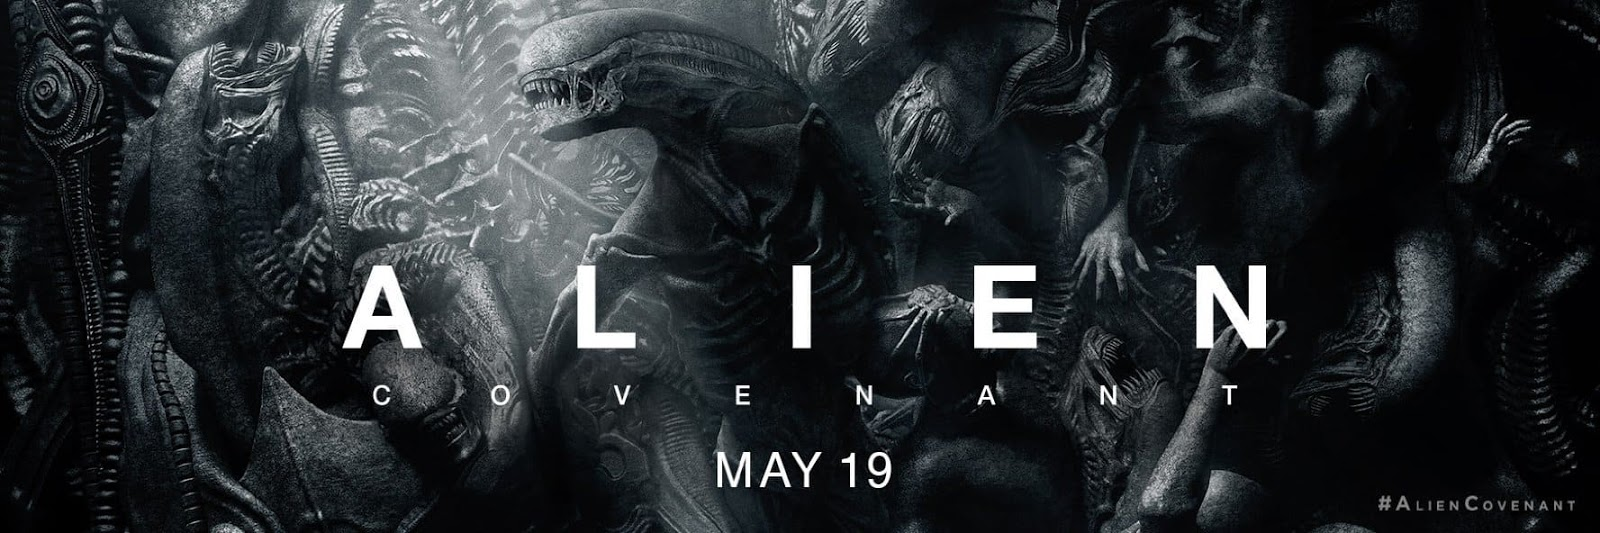 Alien Covenant 2017 Filme 1080p 720p BDRip Bluray FullHD HD completo Torrent